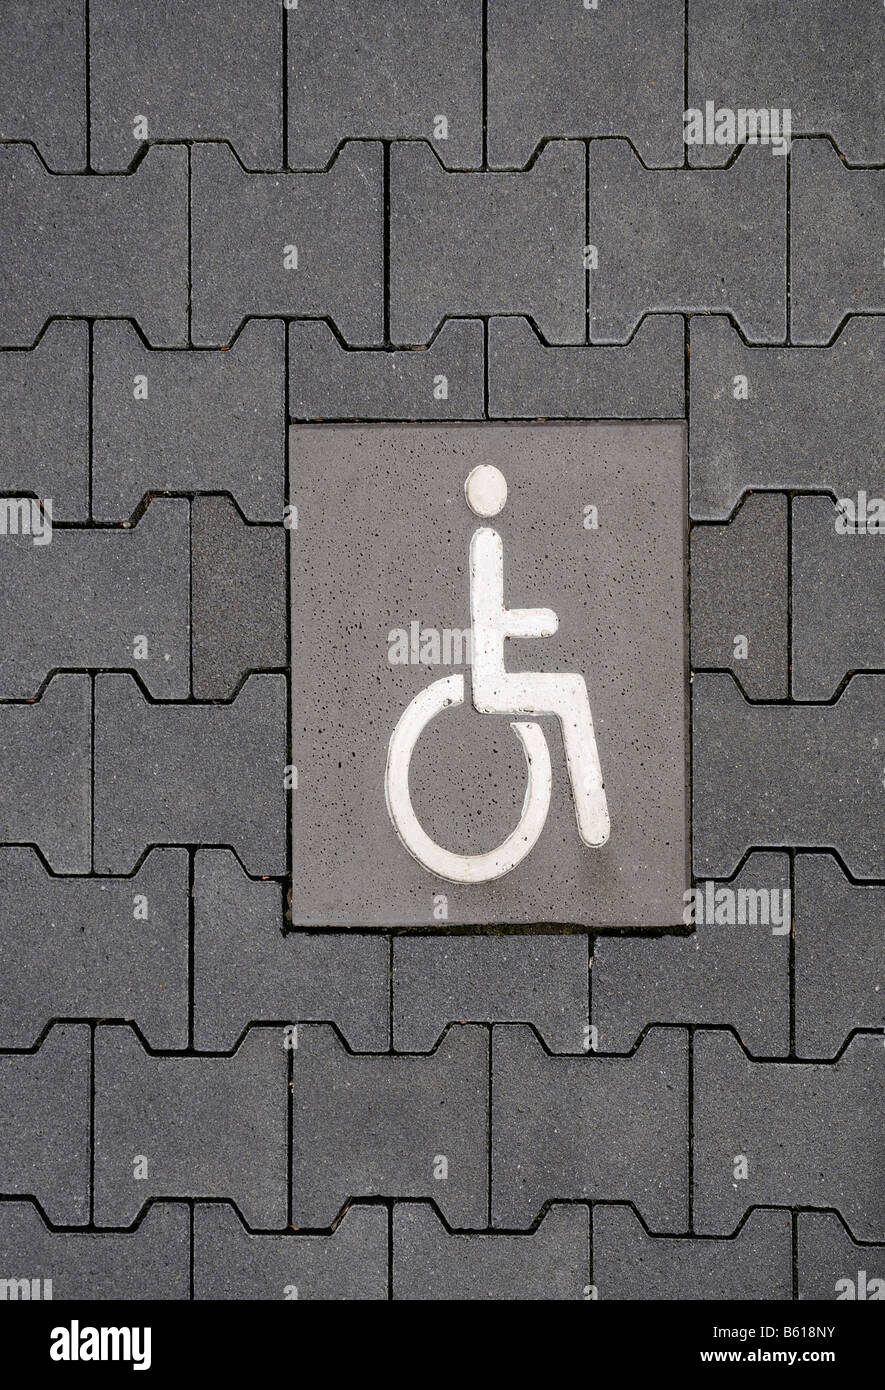 Disabled park place with wheelchair user pictogram in the paving - Stock Image